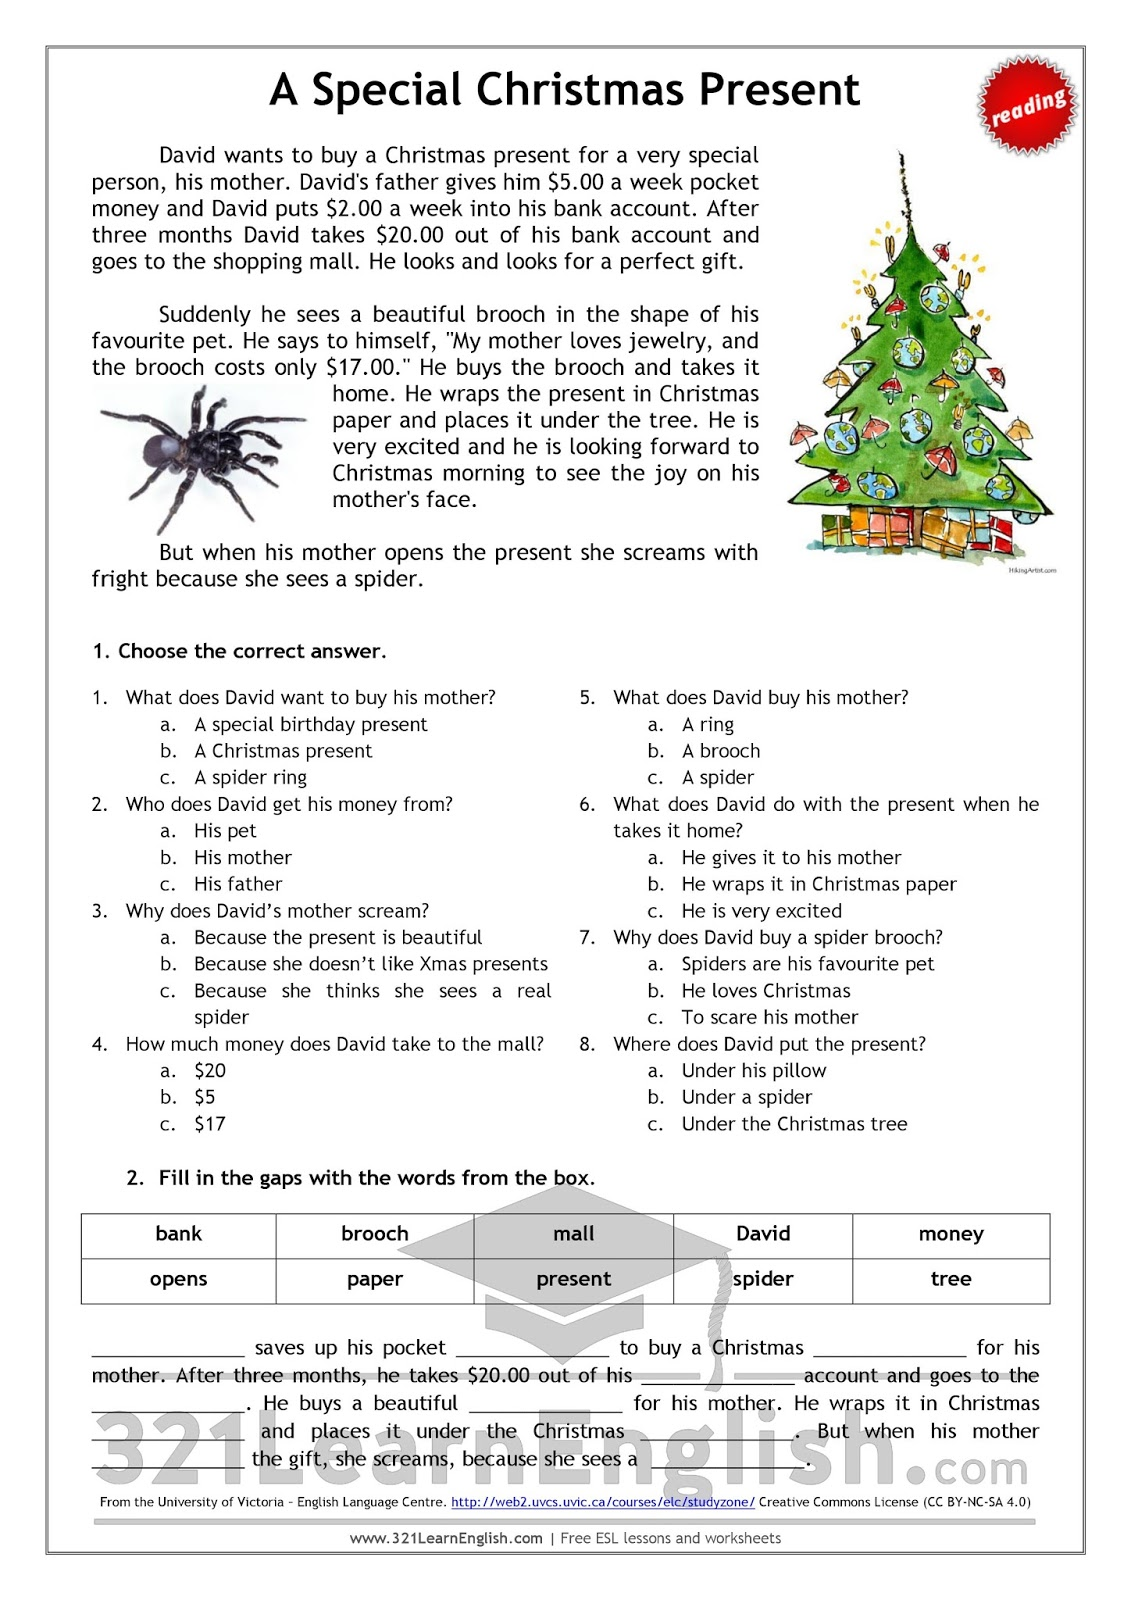 321 Learn English com: Reading: A special Christmas present